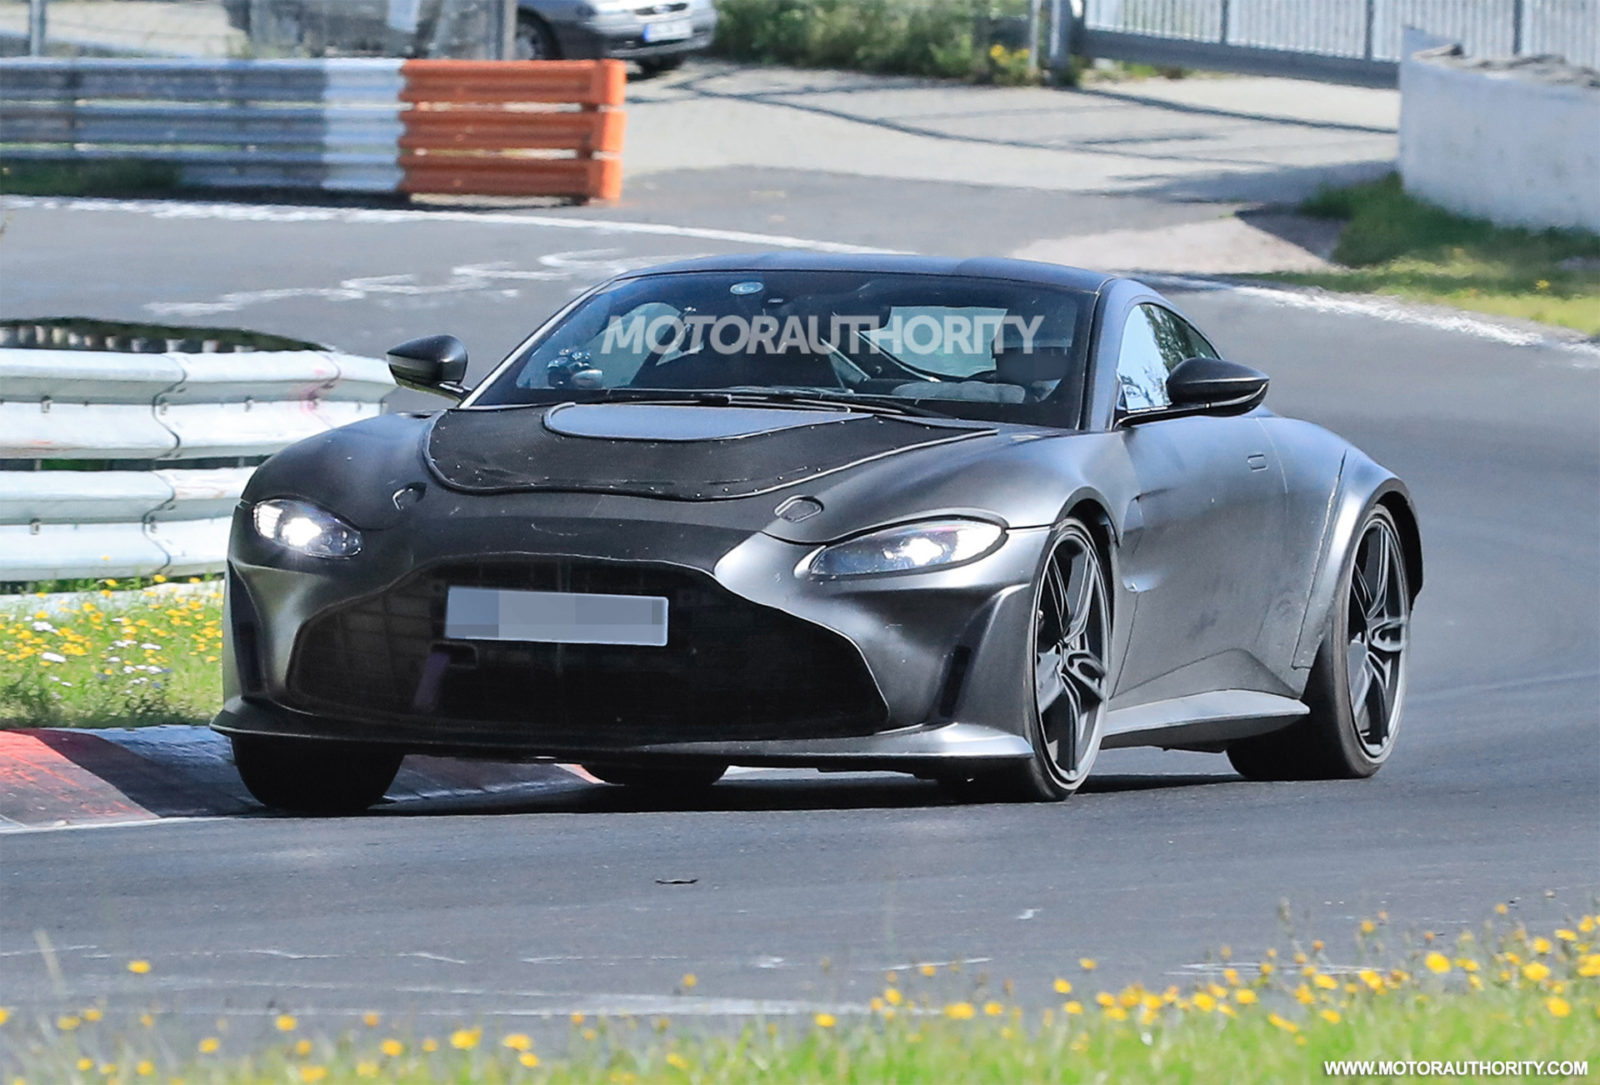 2023-aston-martin-vantage-v12-rs-spy-shots-and-video:-hardcore-variant-to-top-updated-range